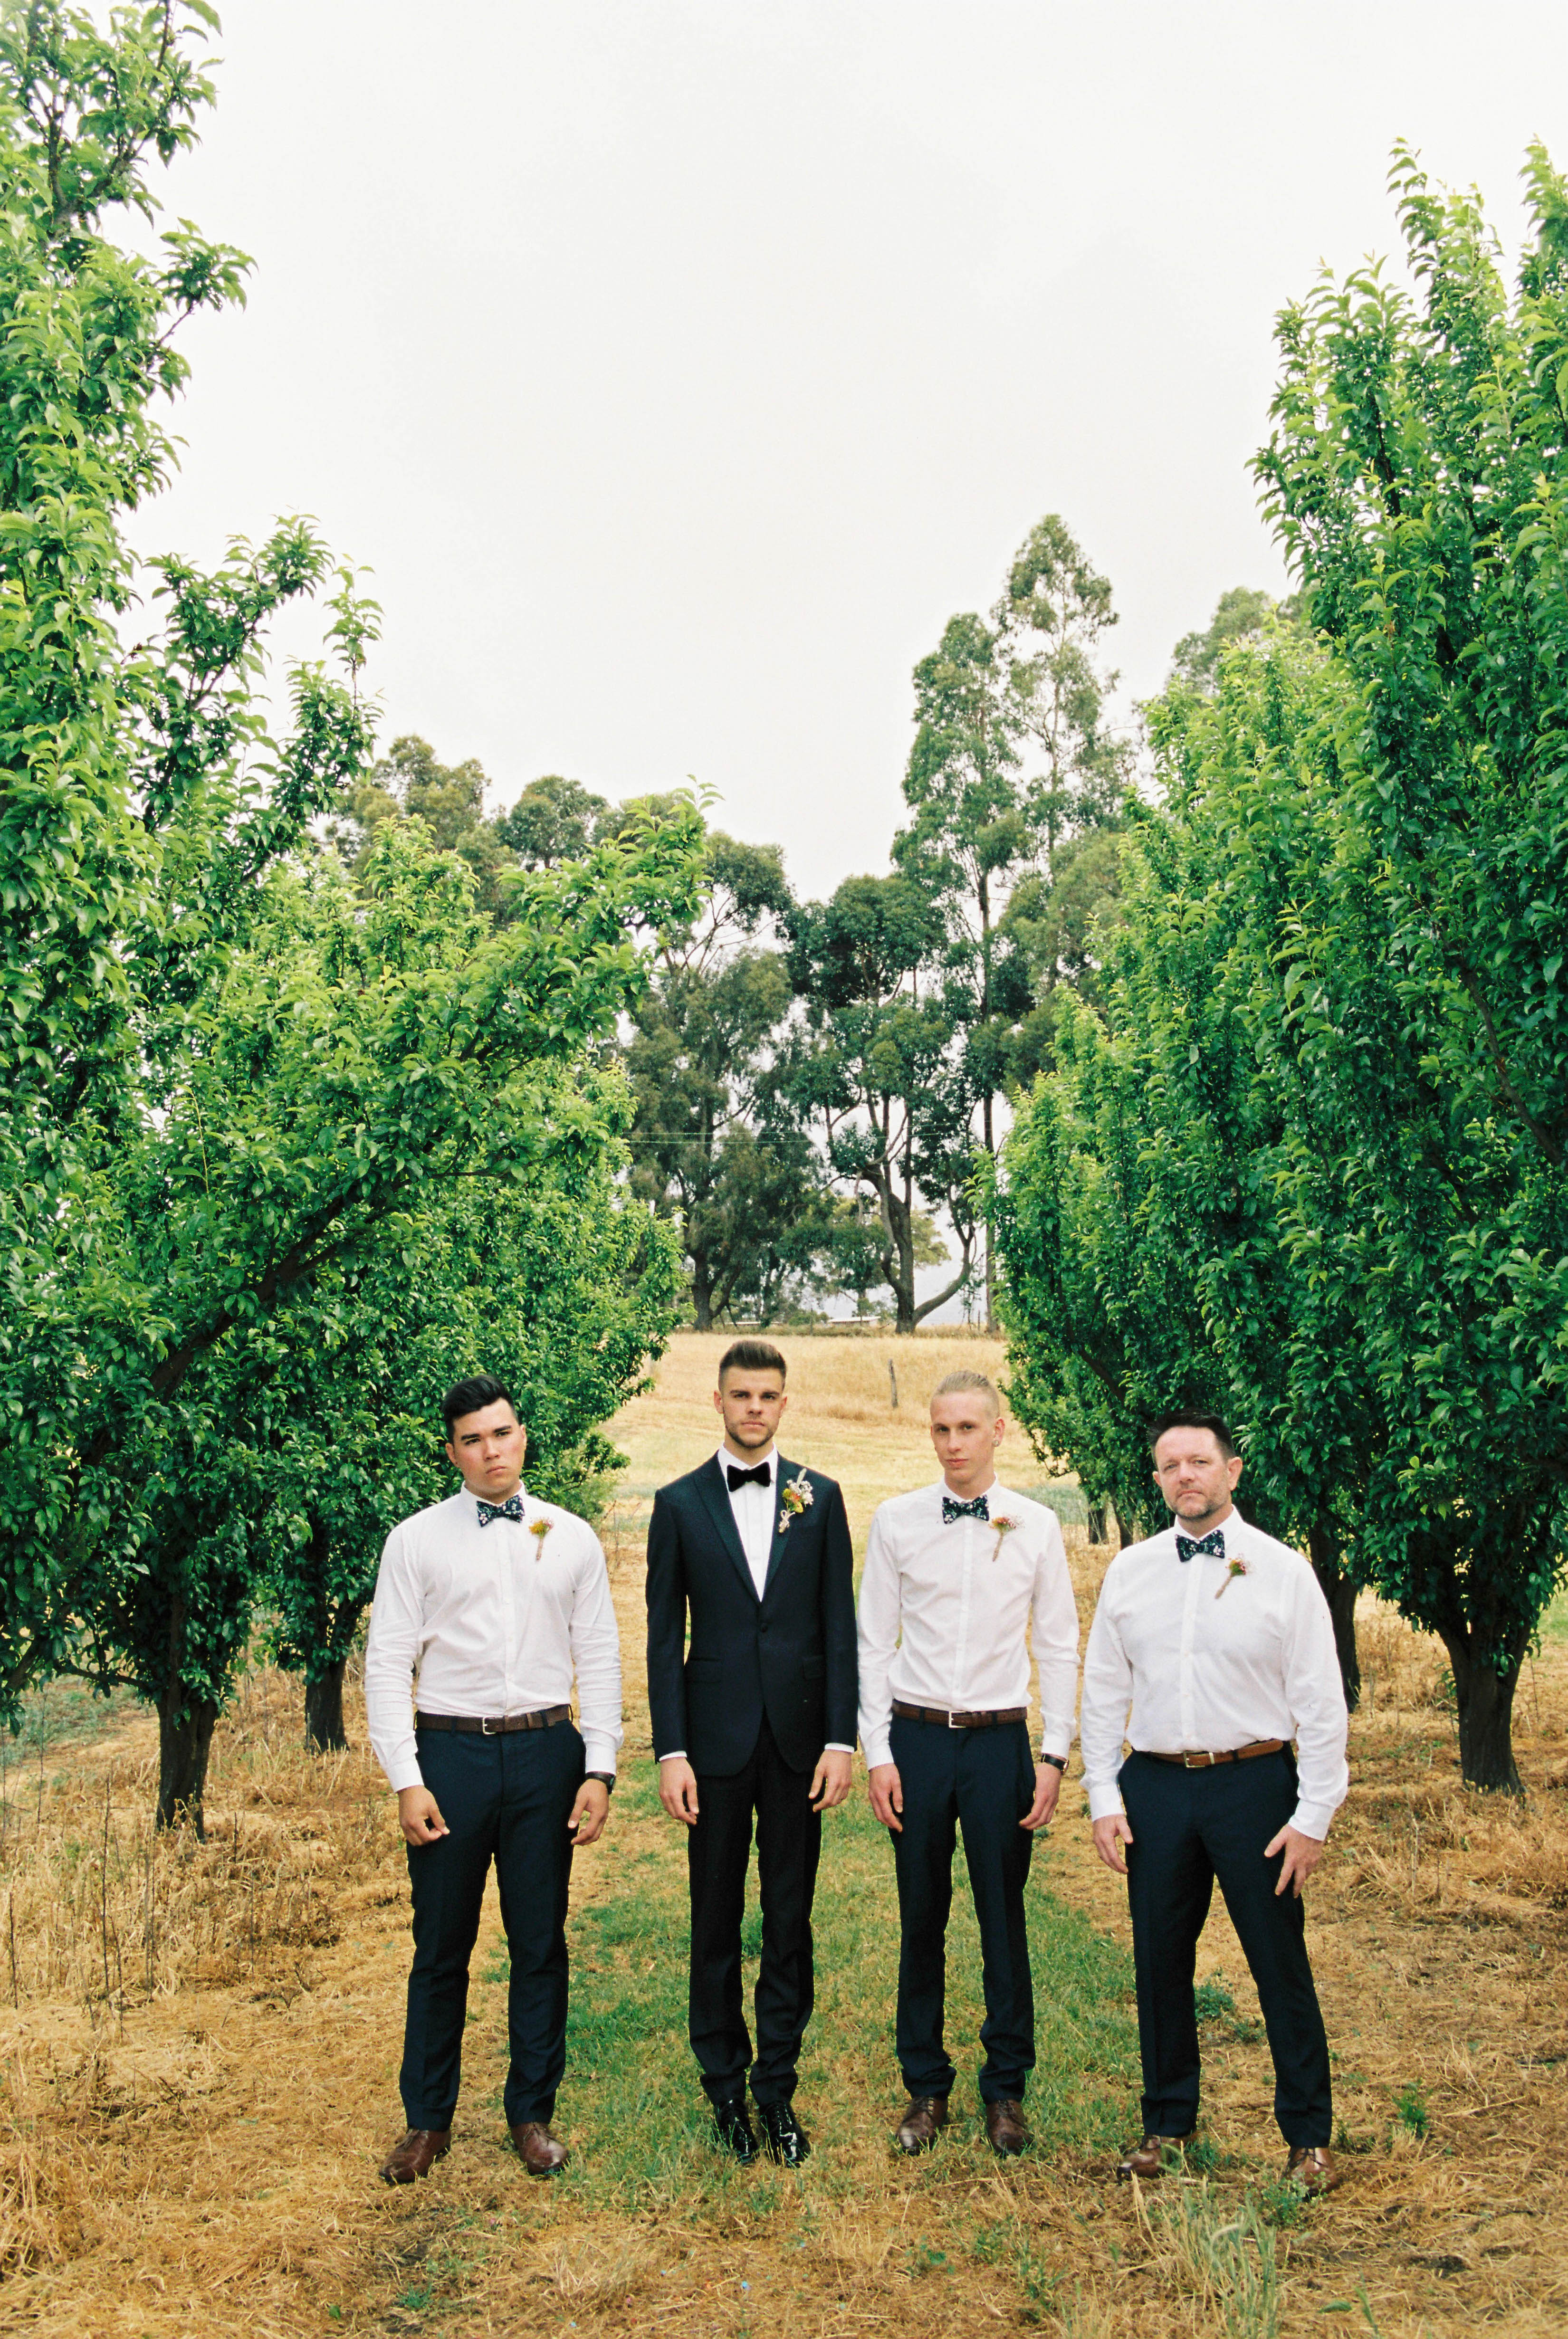 A photo of the groom and groomsmen looking sharp at an Australian Country Wedding